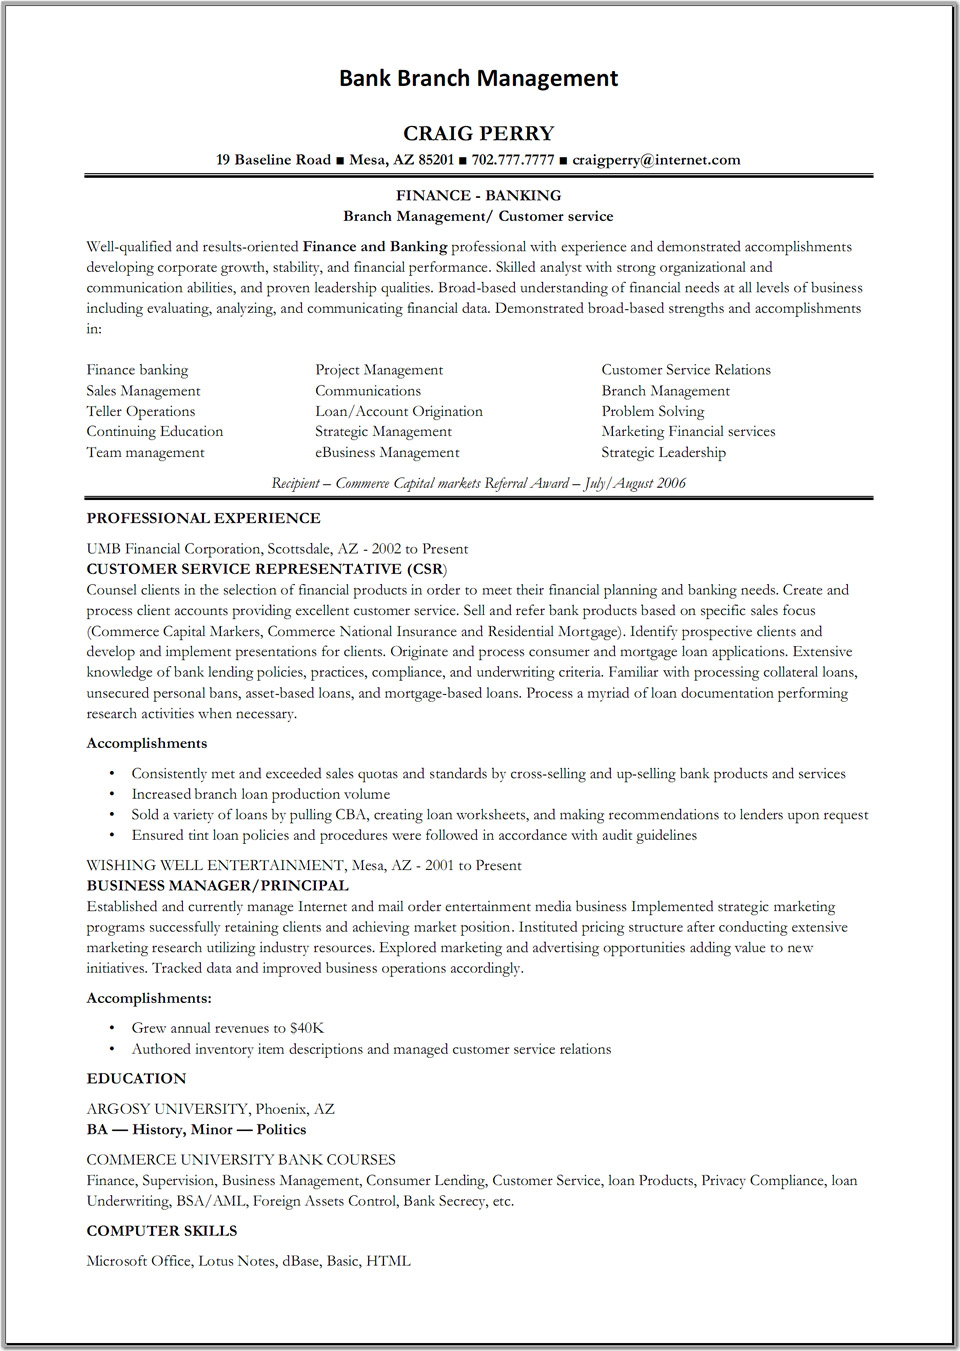 professional summary for bank teller resume bank branch managemennt professional summary for bank teller resume skills